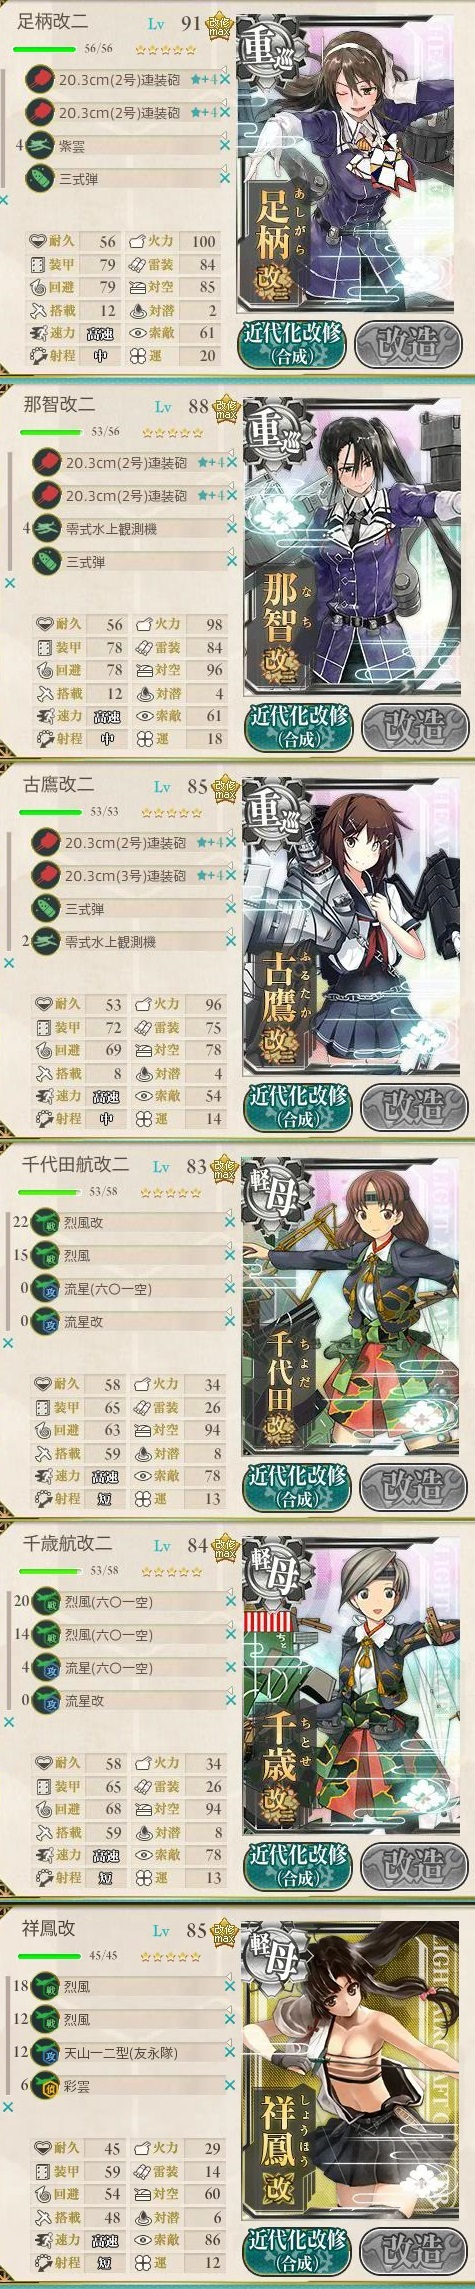 KanColle-150430-05474959 - コピー